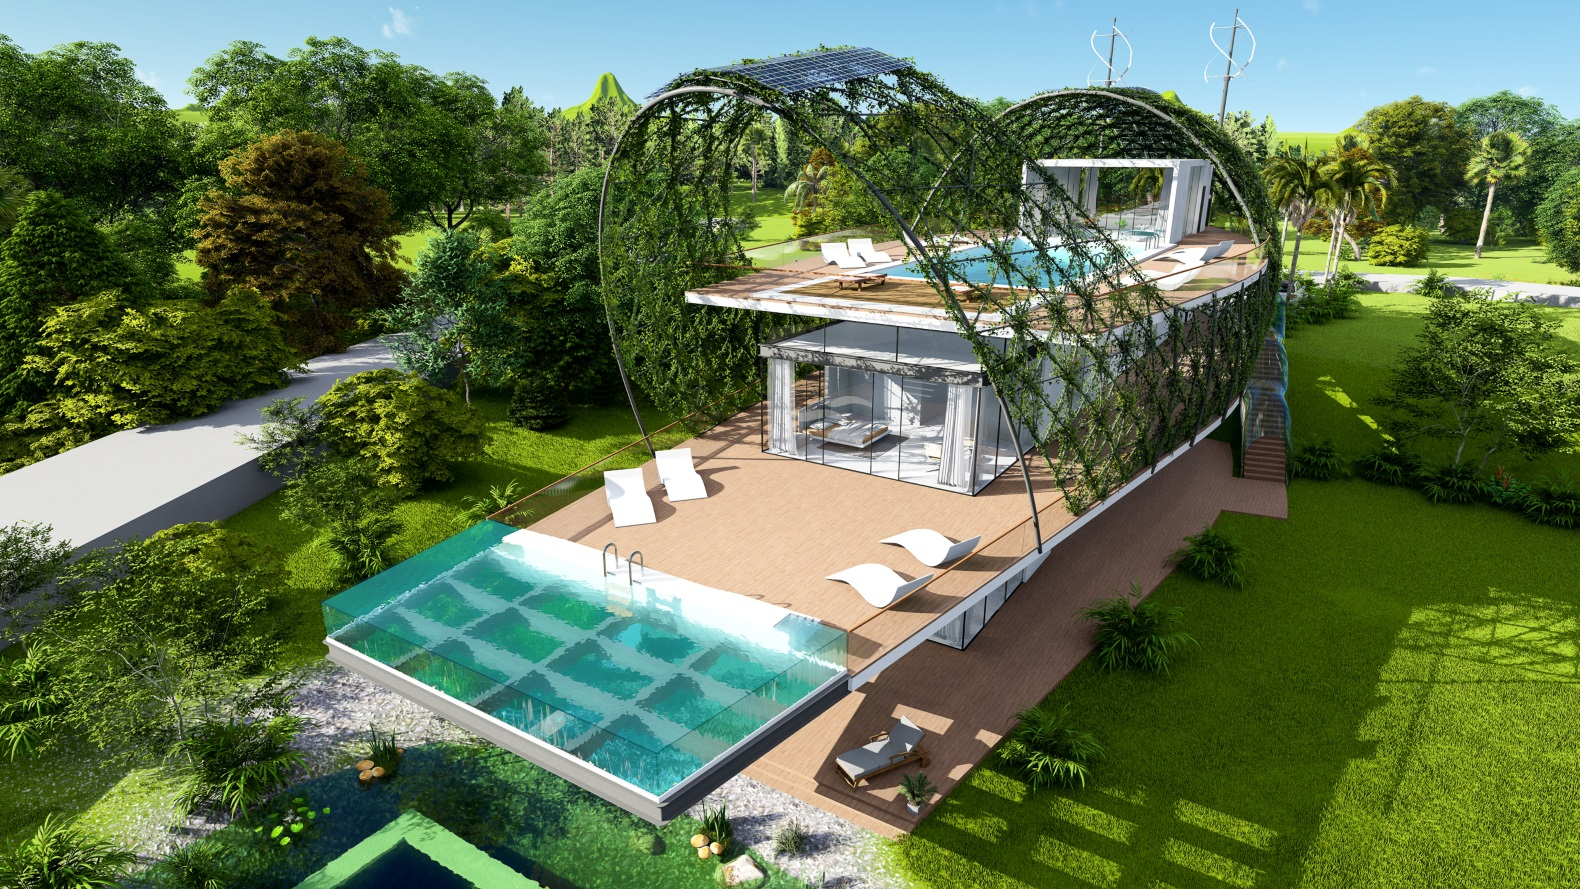 The Cocoon Smart Home will harvest rainwater, solar energy and organic veggies in the Caribbean